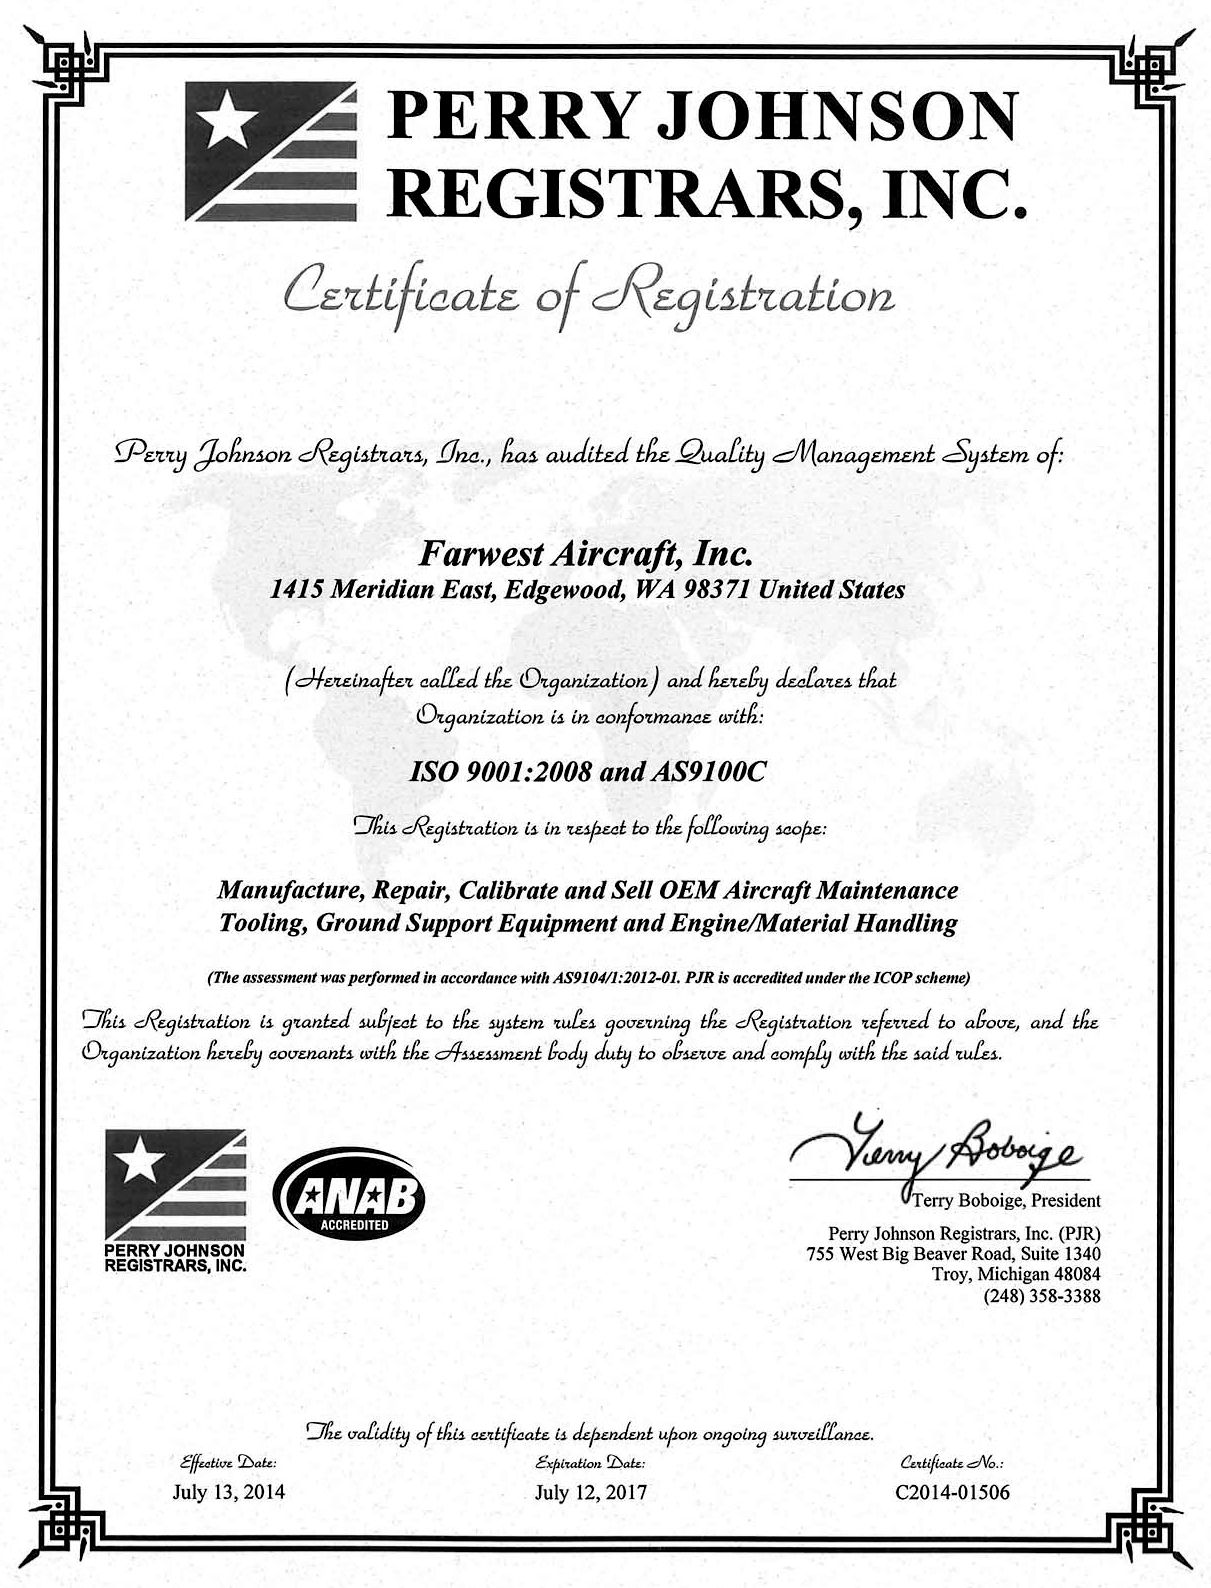 As9100 Registration Certification Color Copy Not To Be Sent To